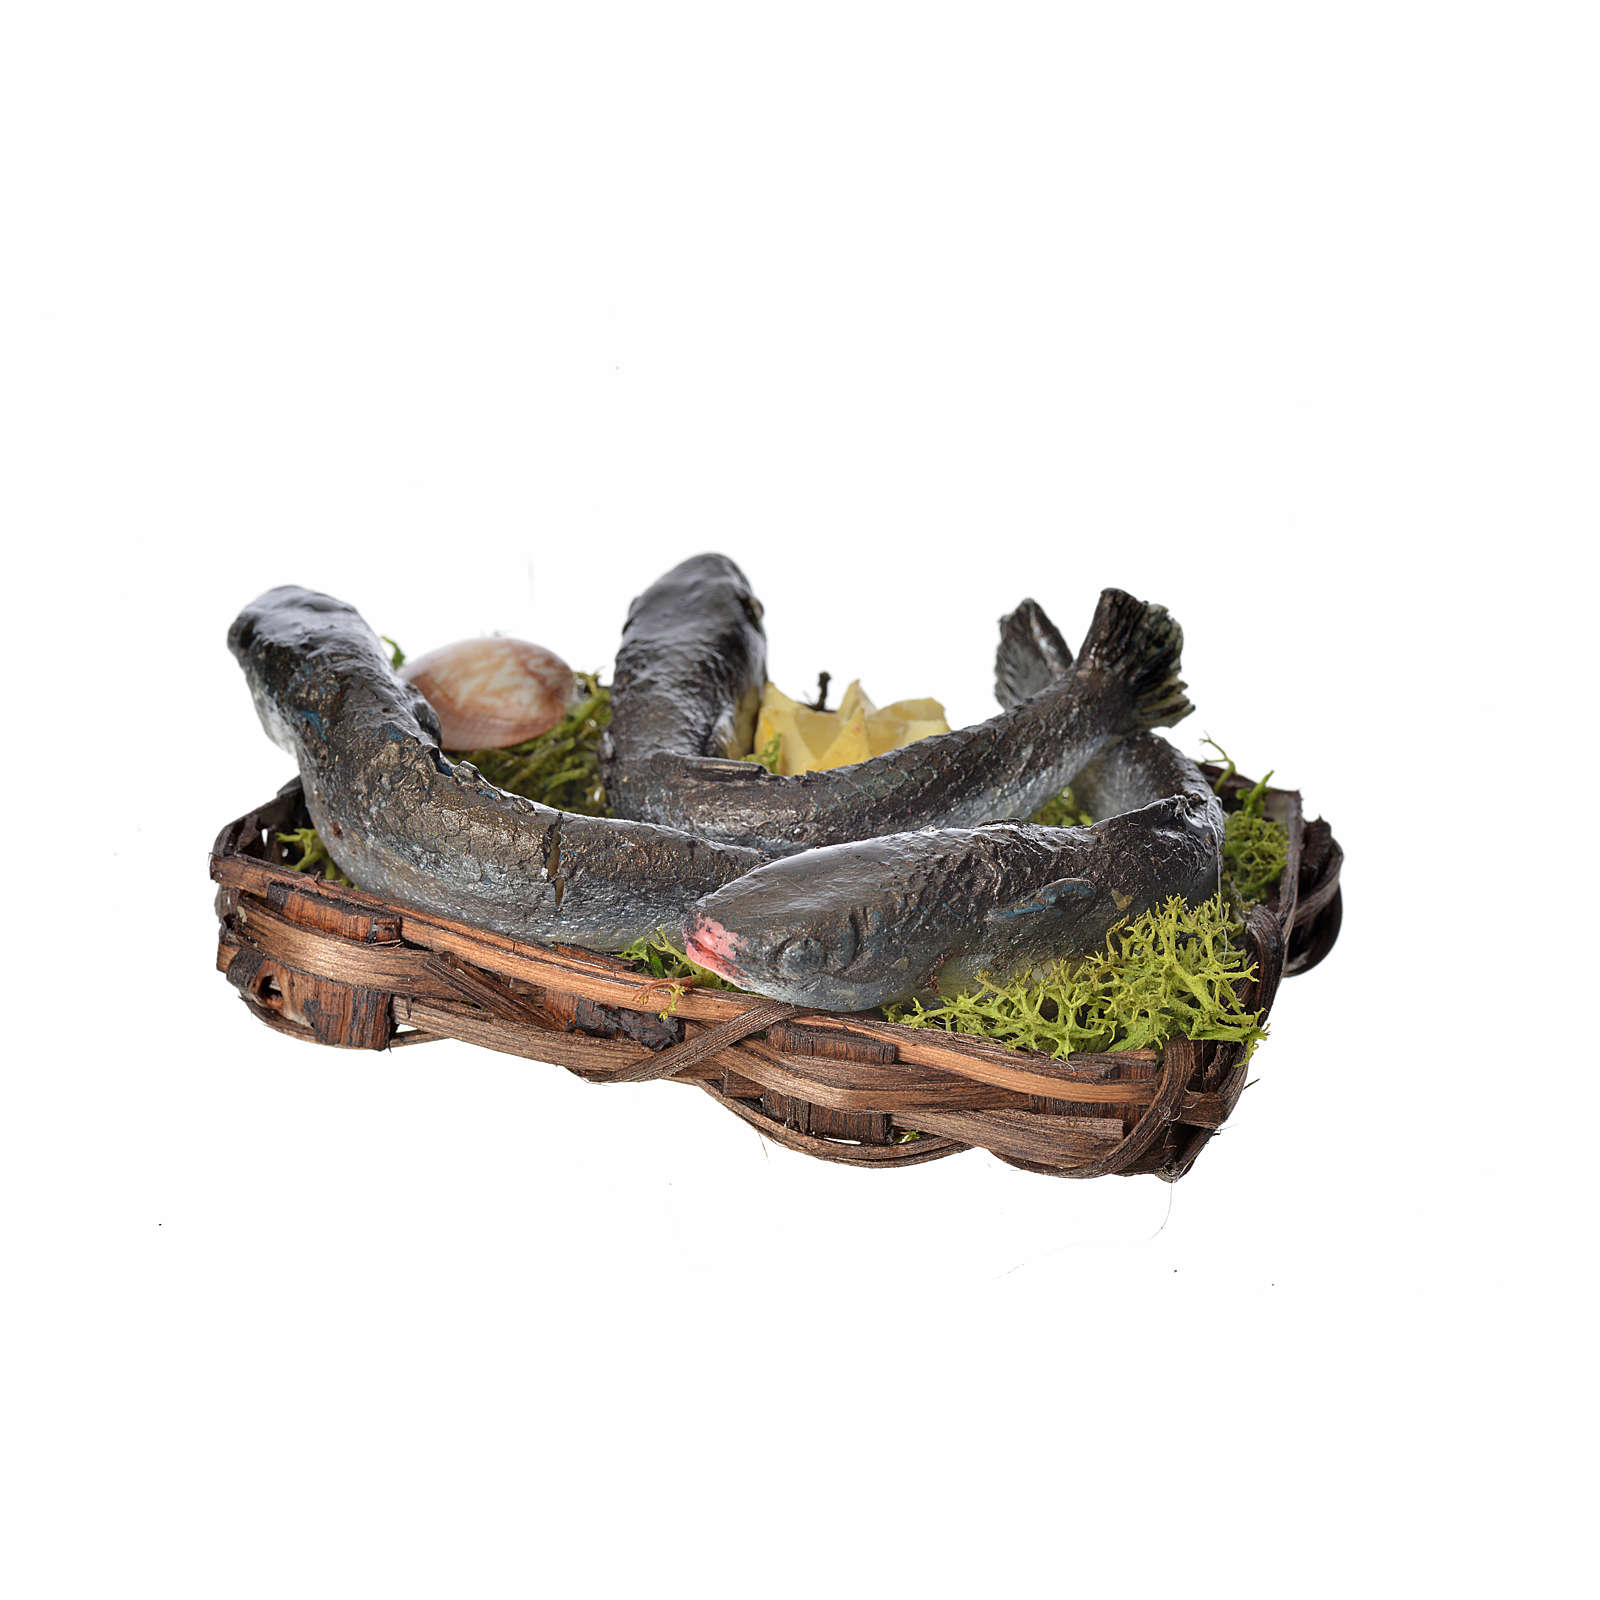 Nativity accessory, fish and clams basket in wax, 10x7x8cm 4